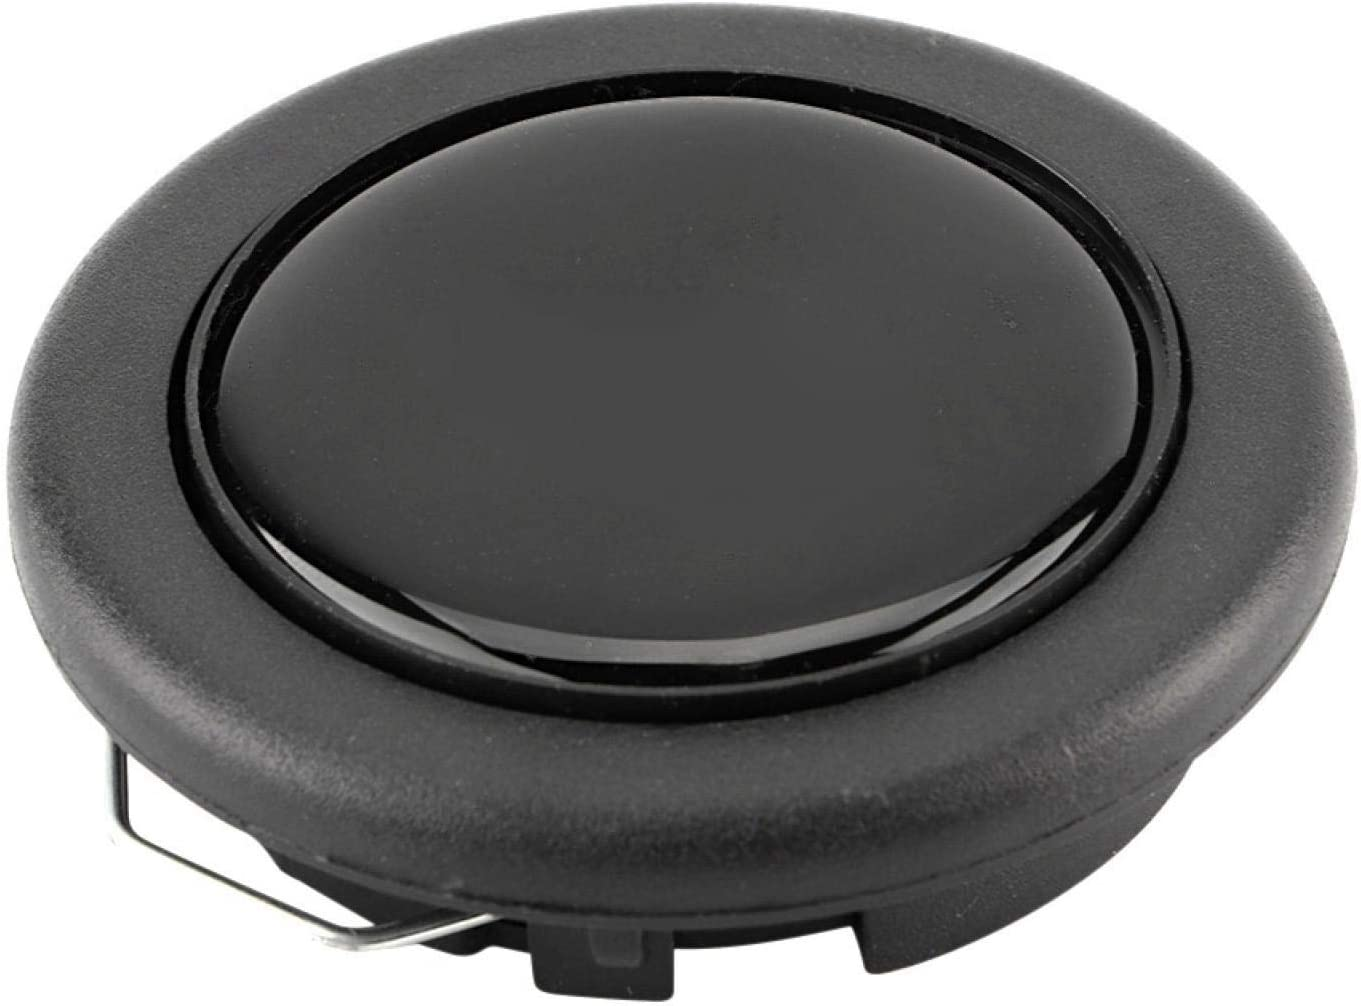 Kuuleyn Outstanding Car Horn Button Wh Inventory cleanup selling sale Steering Wheel